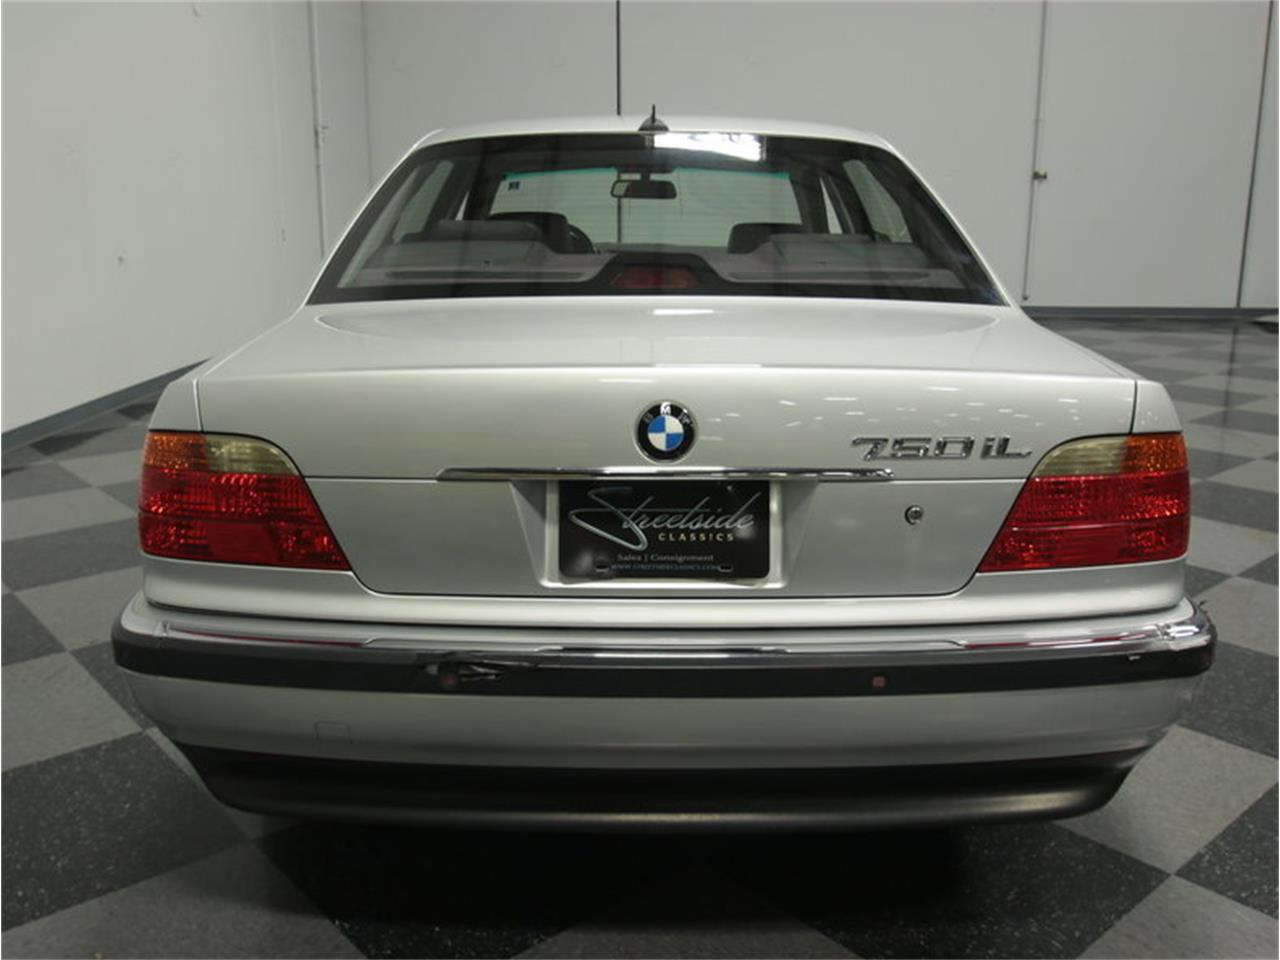 2000 bmw 750il protection for sale classiccars com cc 839073 2000 bmw 750il protection for sale